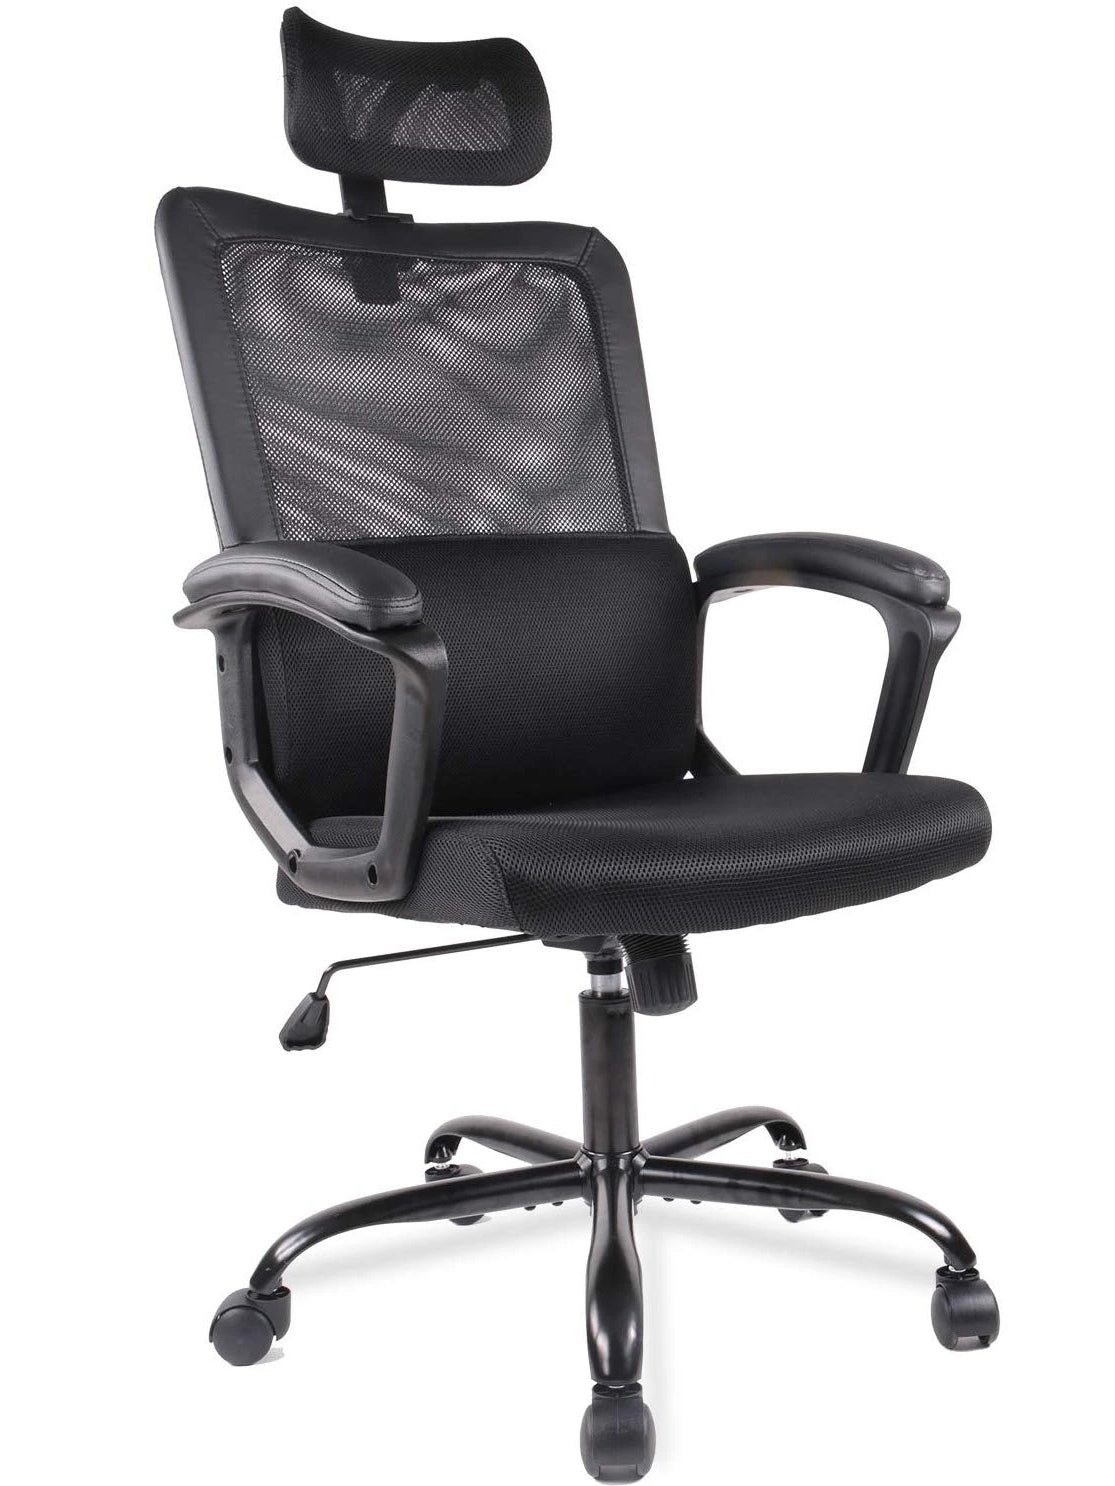 Smugchair Ergonomic Black Mesh High Back Office Chair Smugdesk Net Smugdesk